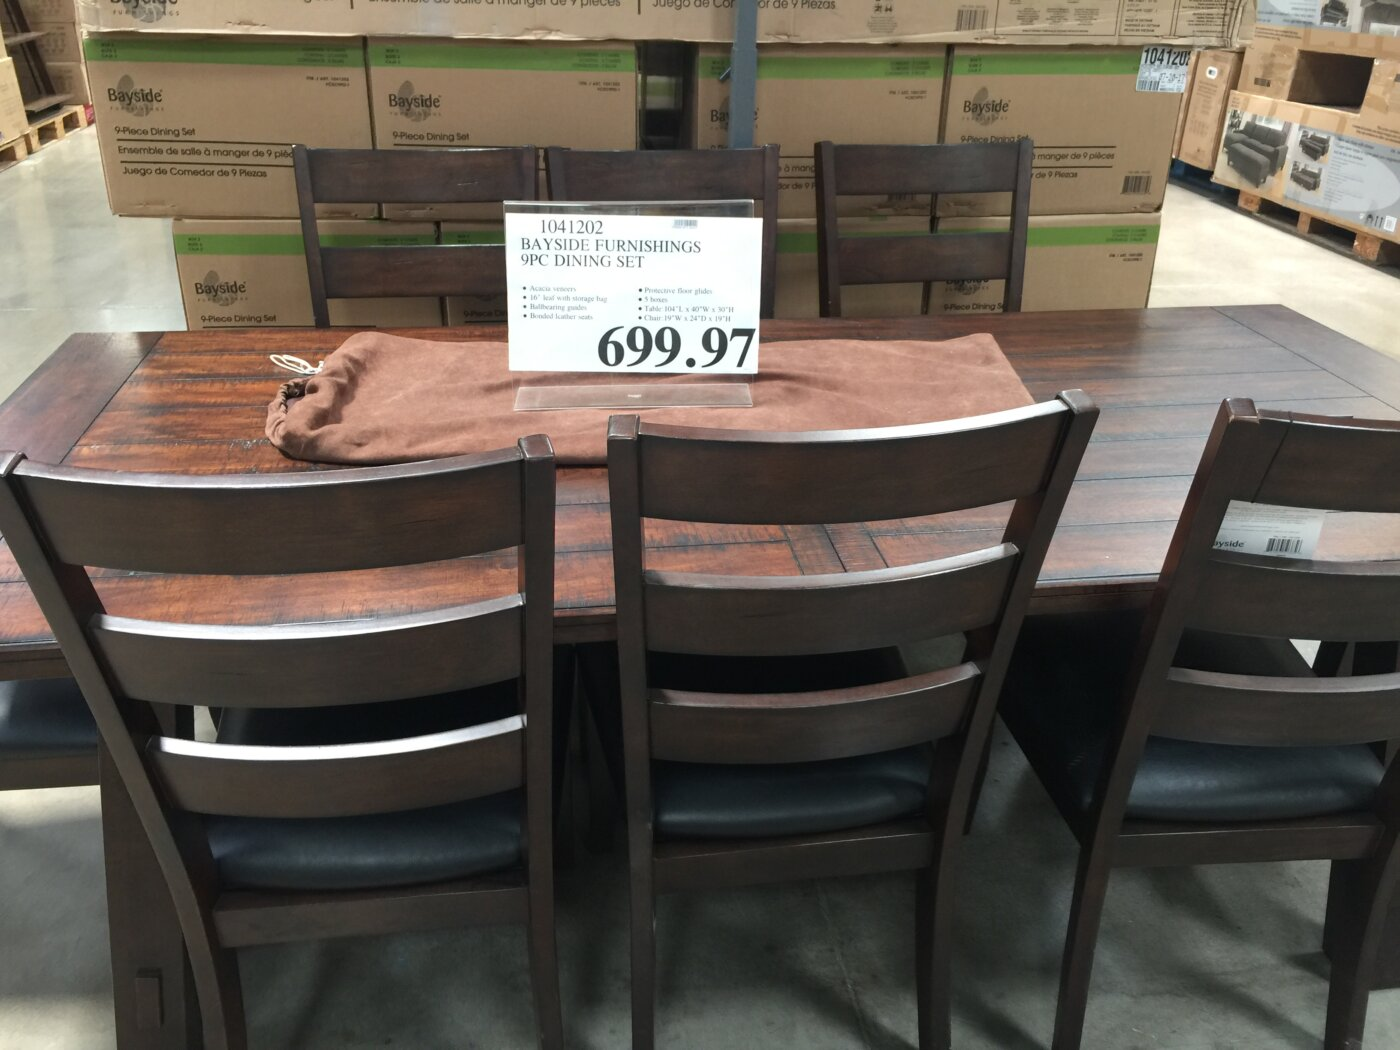 Bayside Furnishings 9pc Dining Set | Costco97.com